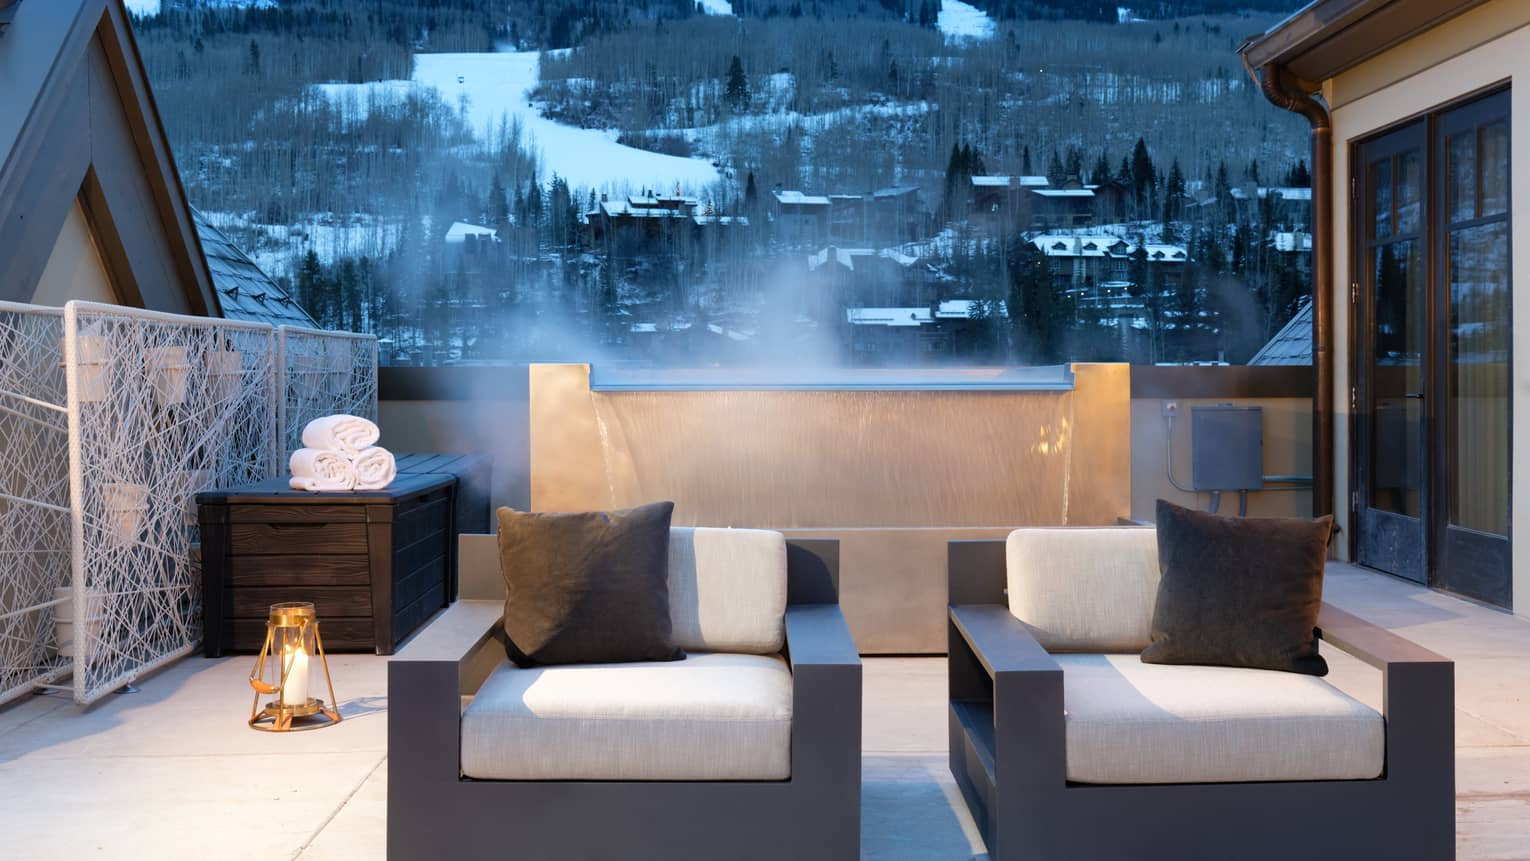 Plush patio armchairs in front of steaming fountain, snowy mountains in background